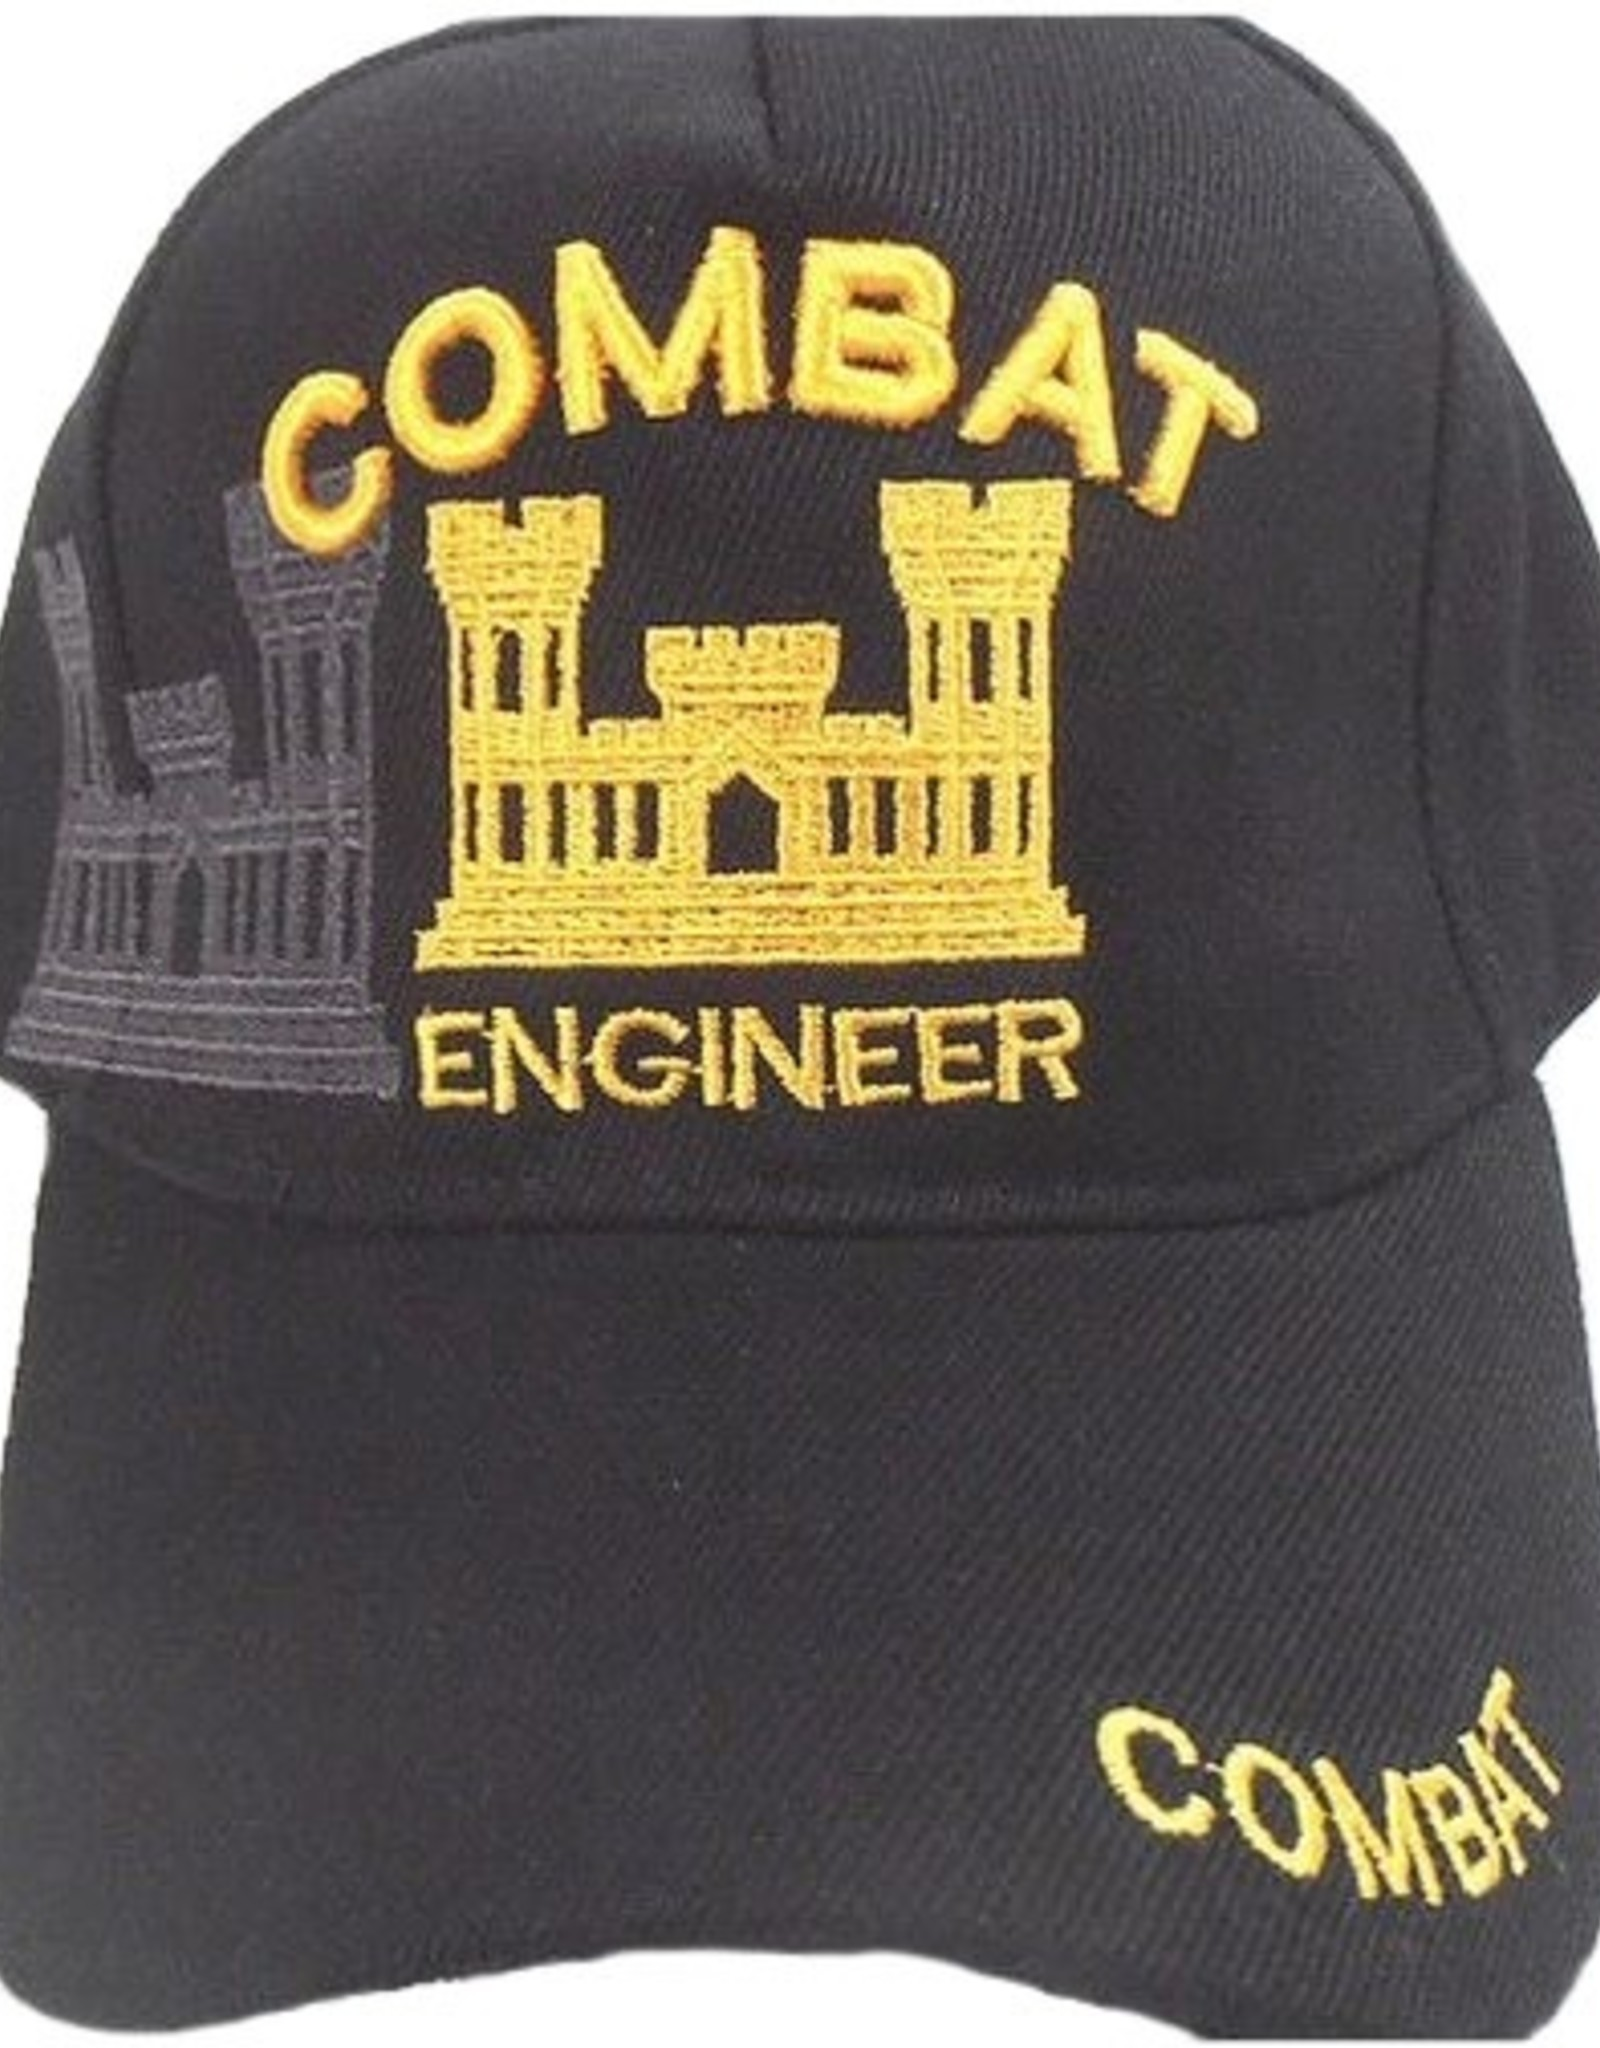 MidMil Combat Engineer Hat with Emblem and Shadow Black